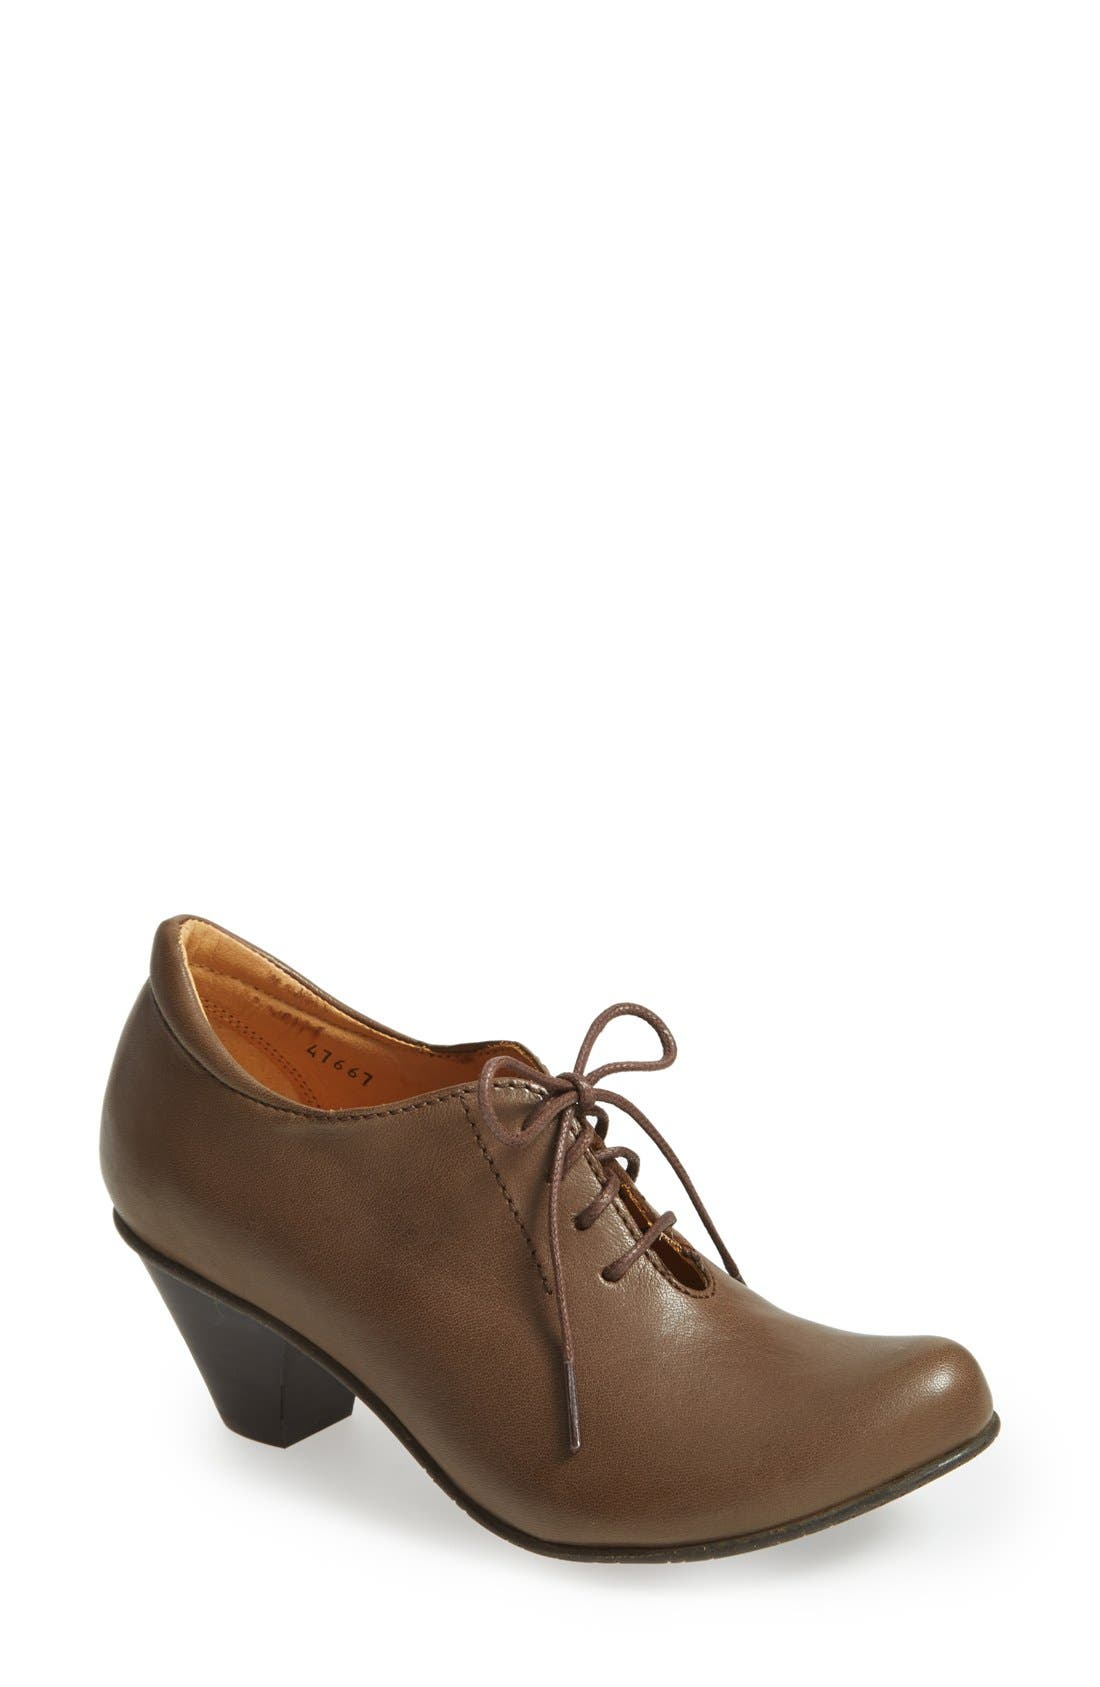 Alternate Image 1 Selected - Fidji 'L870' Oxford Pump (Women)